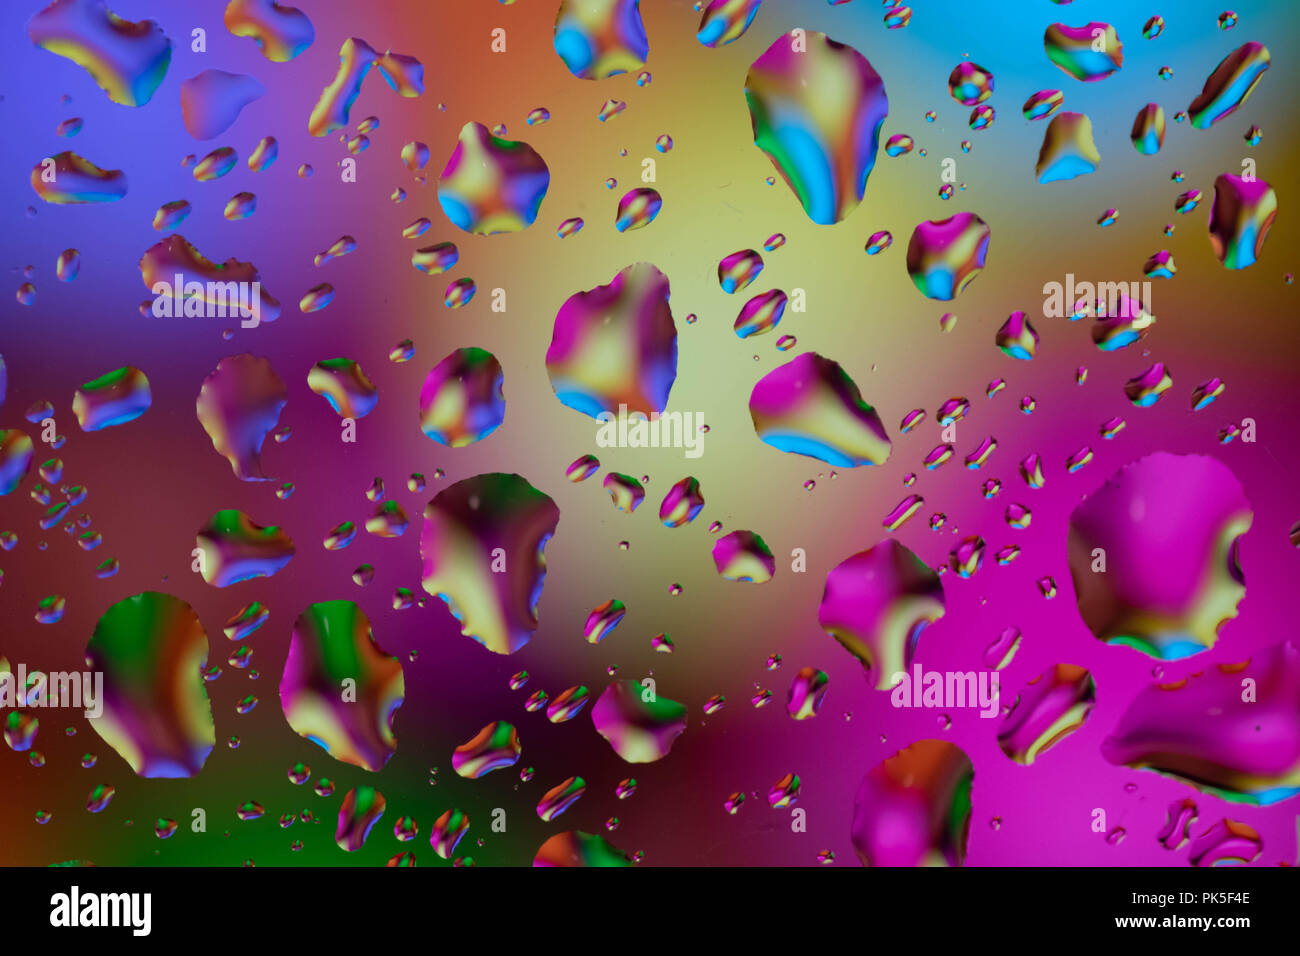 a lot of colorfull drops on window - Stock Image